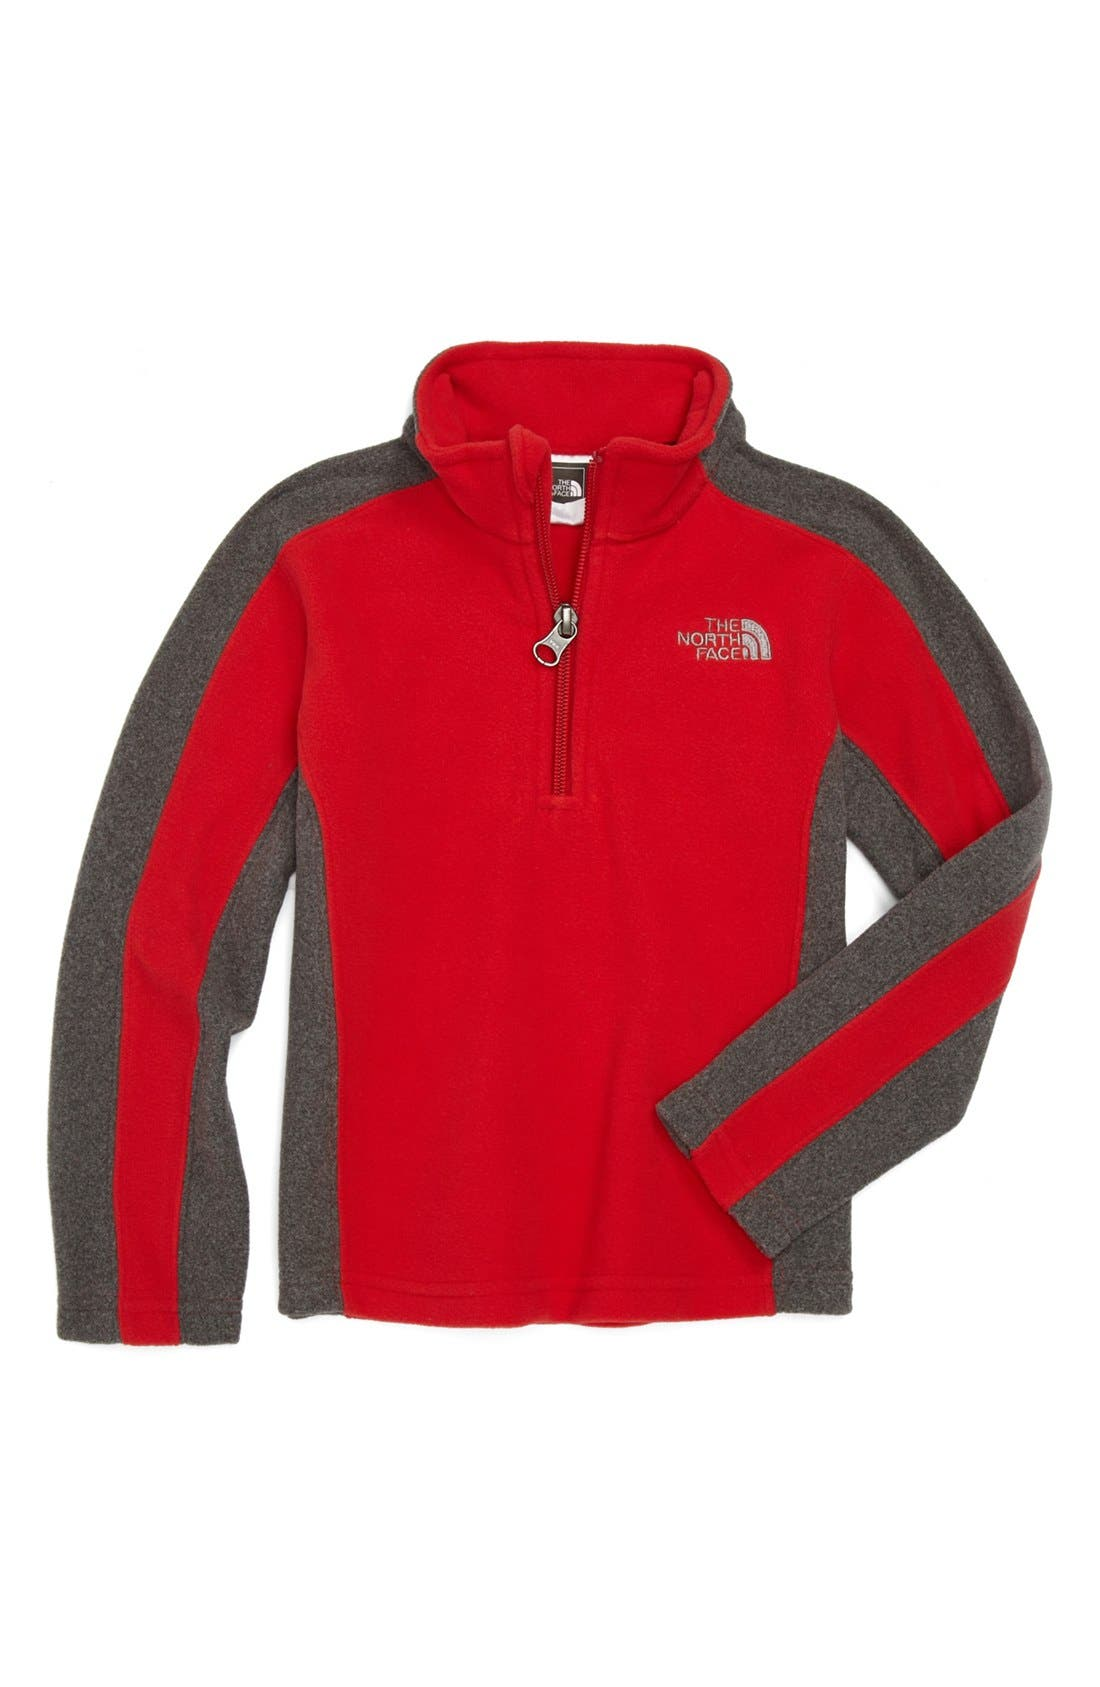 Main Image - The North Face 'Glacier' Quarter Zip Pullover (Toddler Boys)